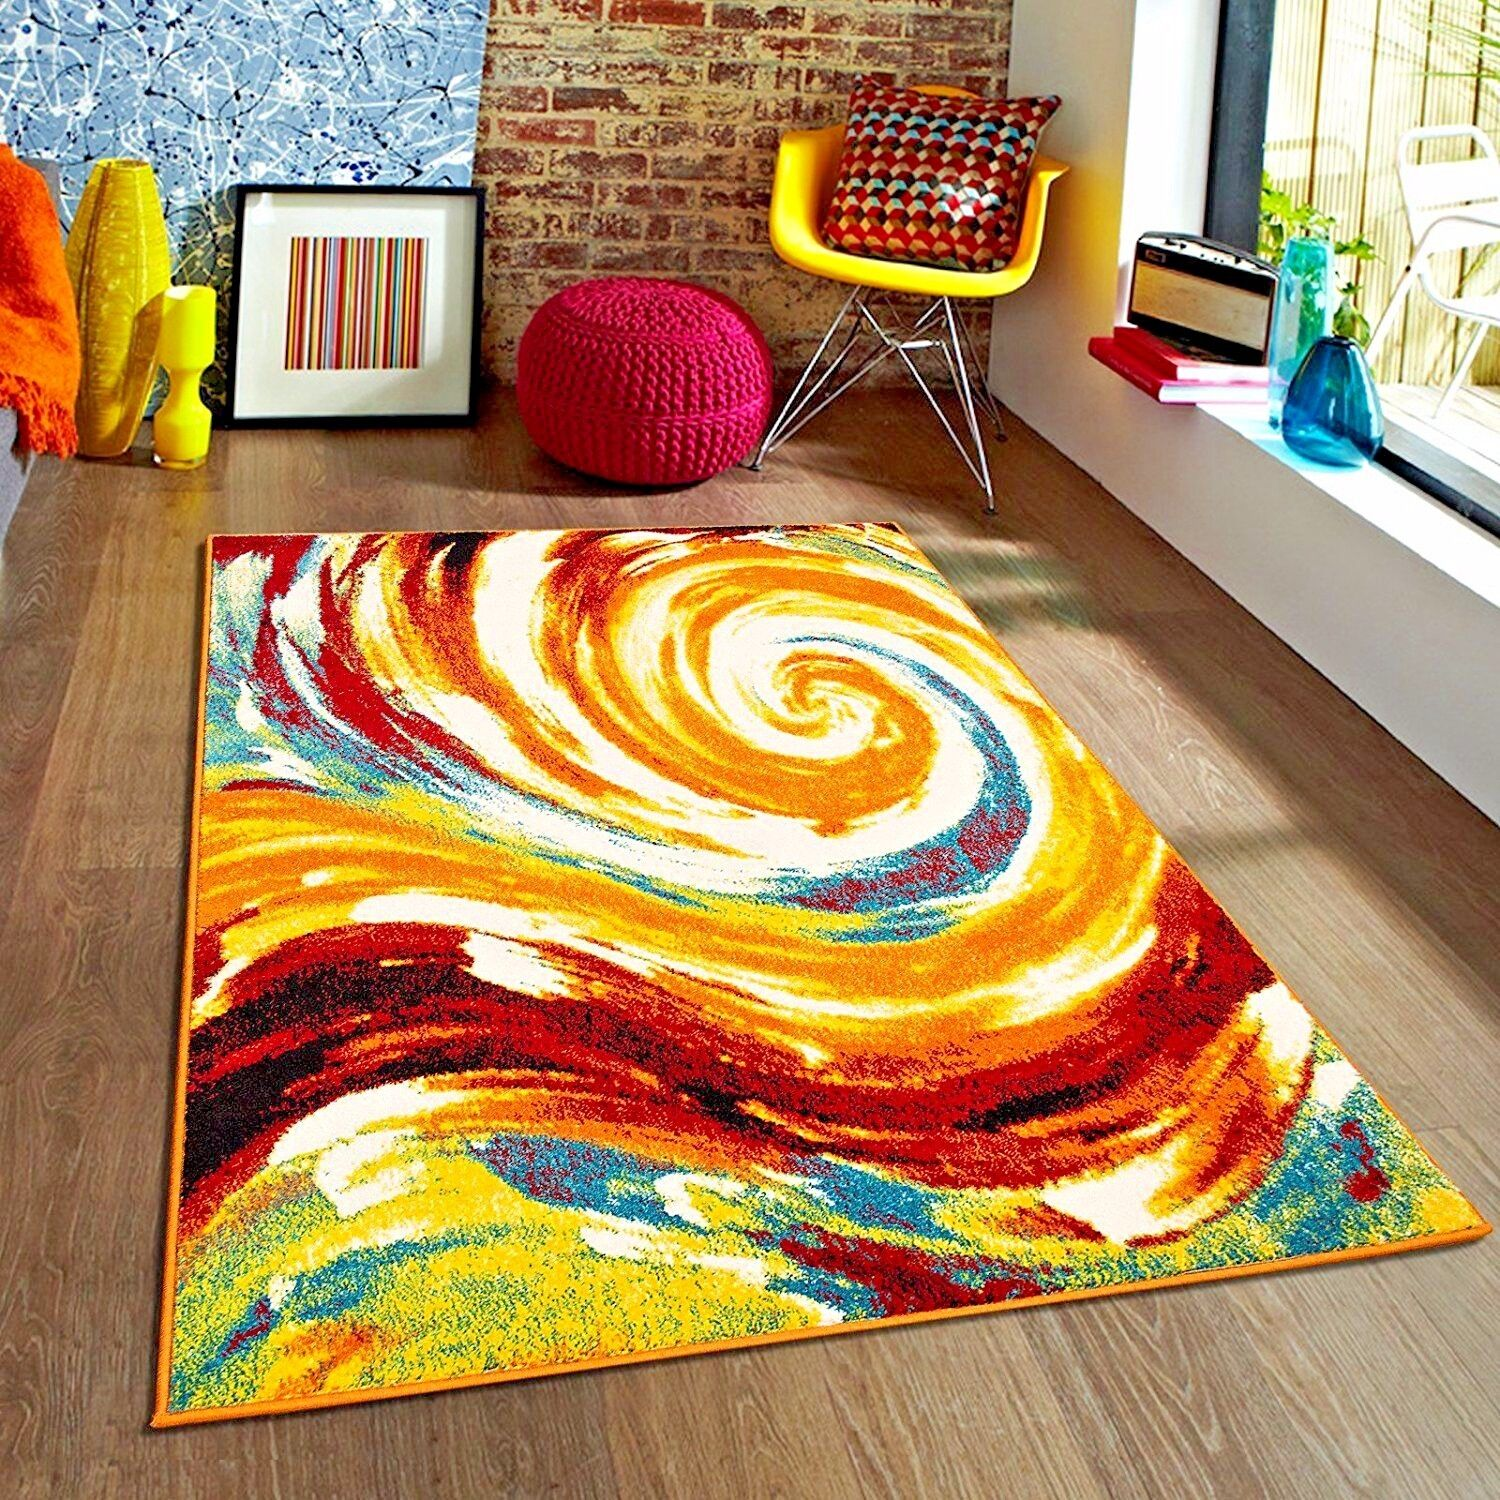 Rugs Area Rugs 8x10 Rug Carpets Modern Large Floor Plush